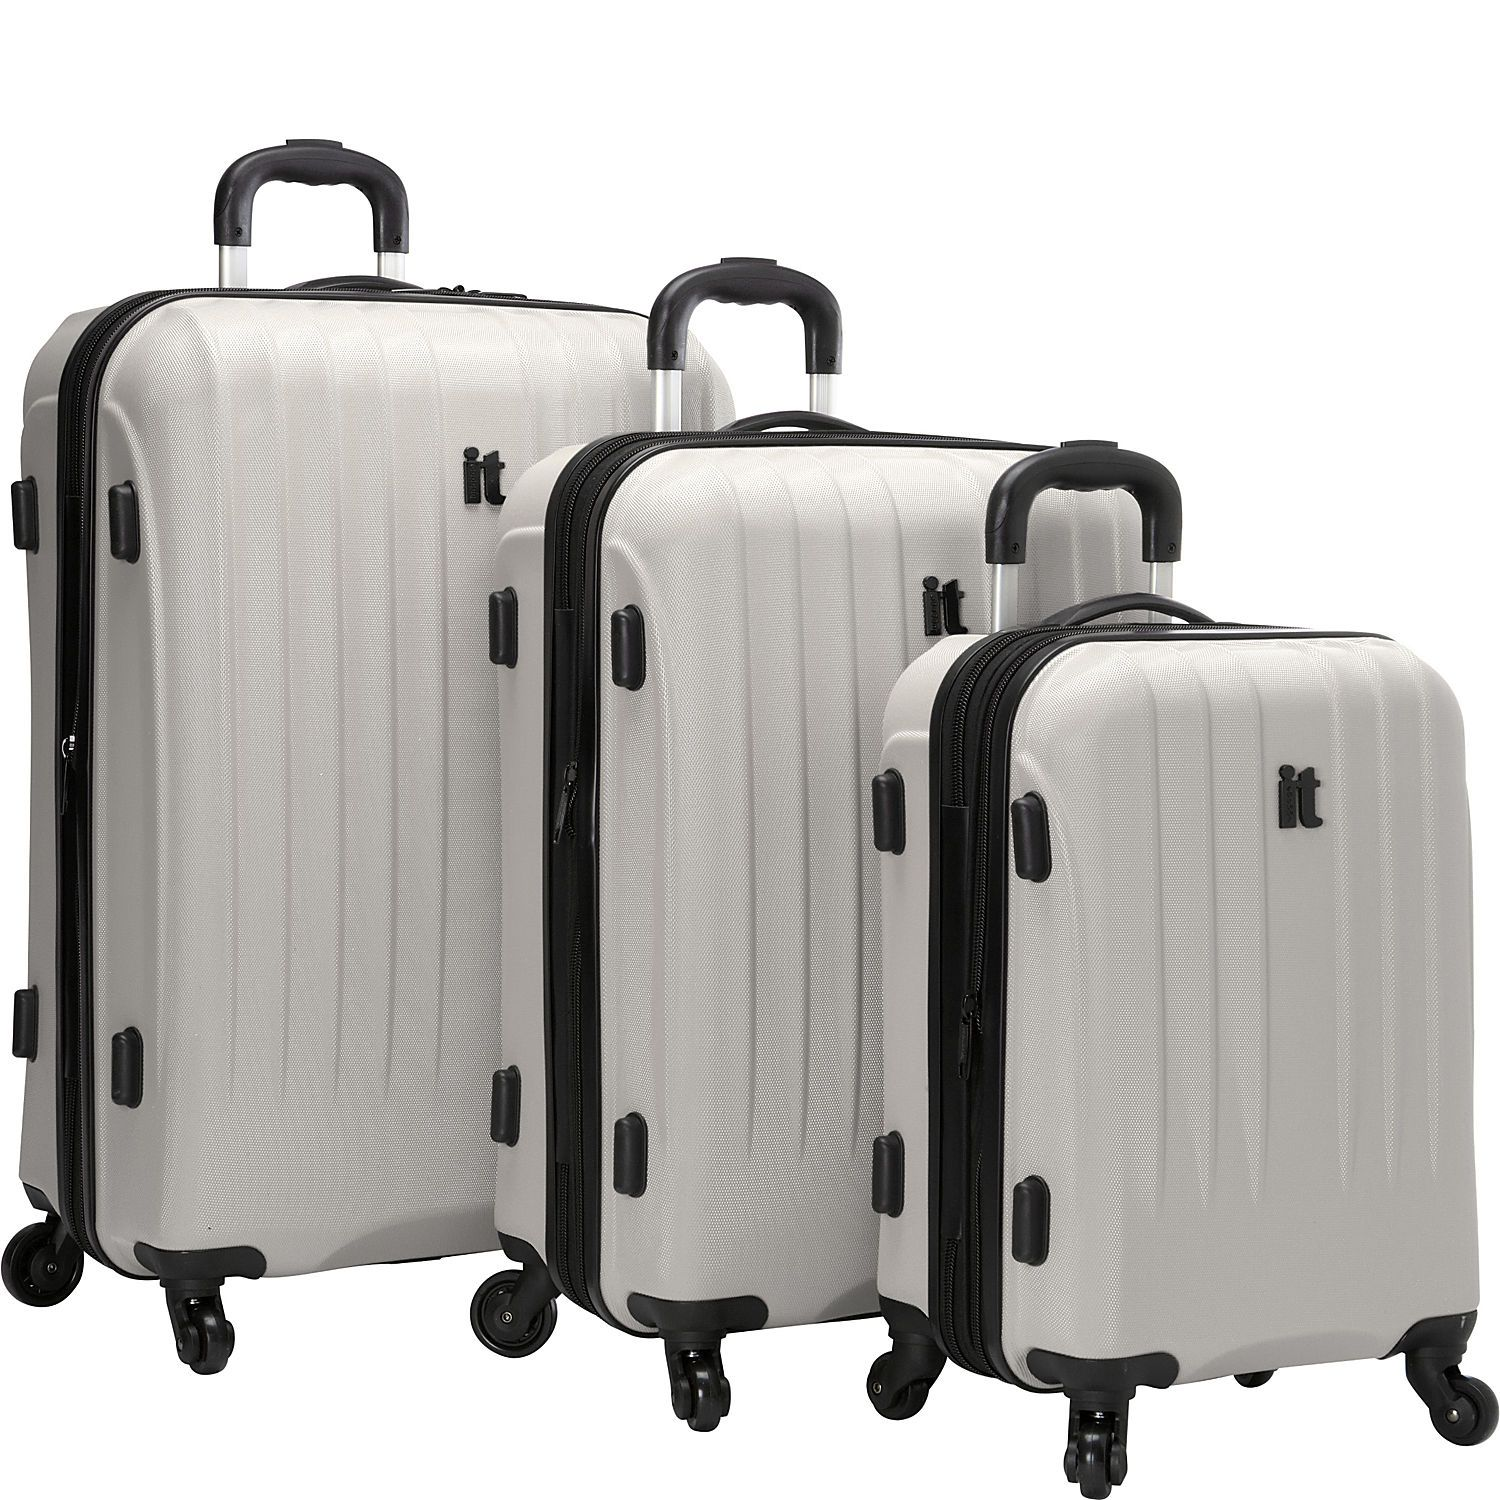 Air 360 3PC Luggage Set - Exclusive | Products, All. and Gears